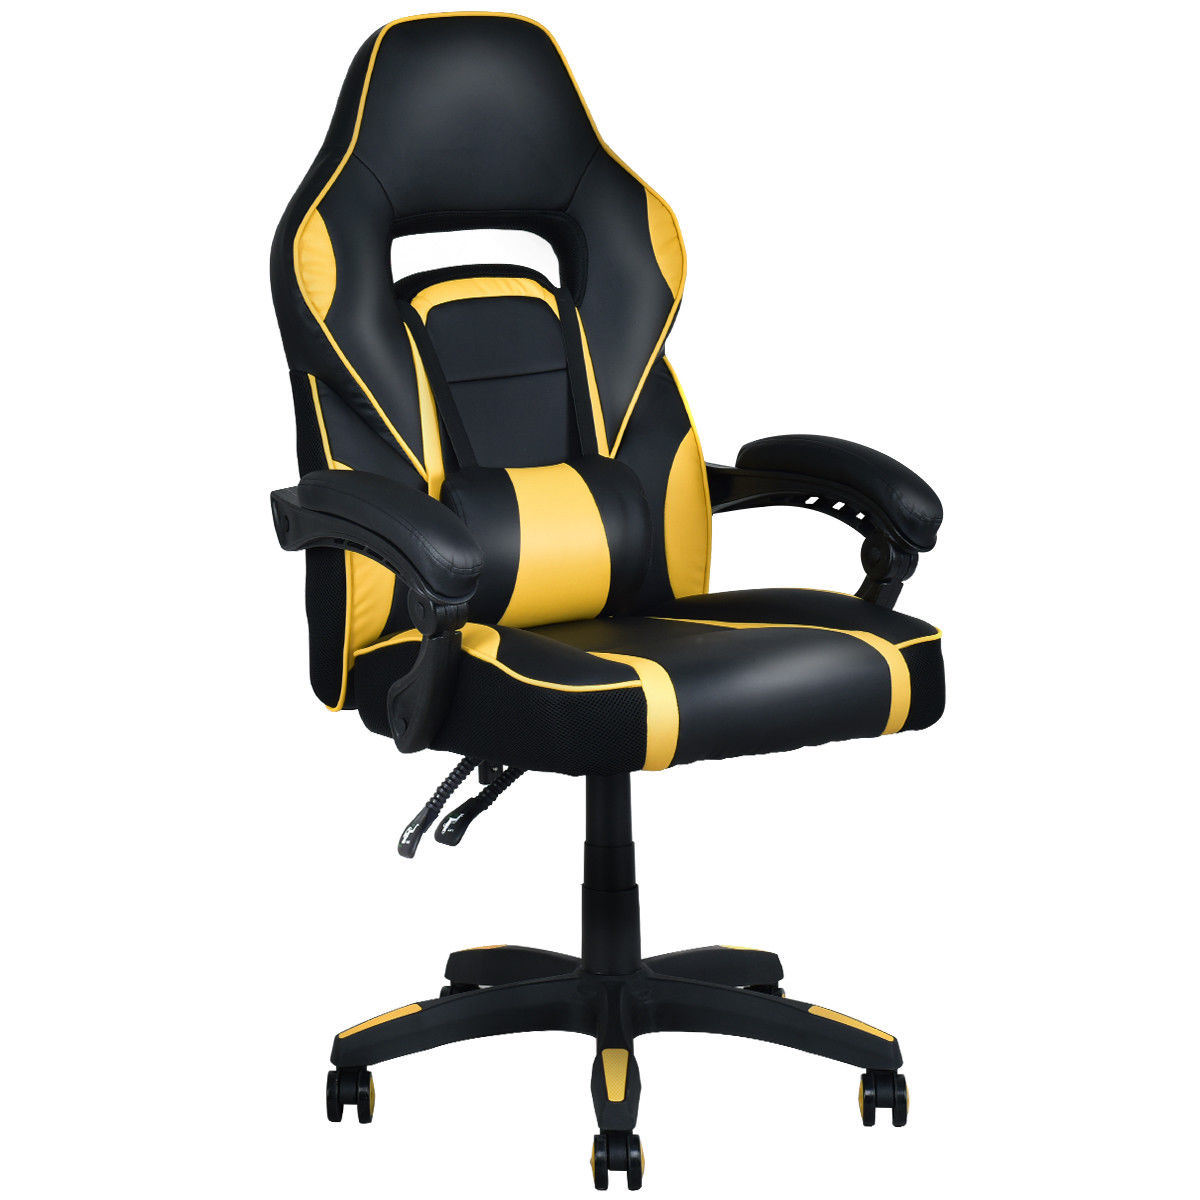 Costway Executive Racing Style PU Leather Gaming Chair High Back Recliner Office Yellow